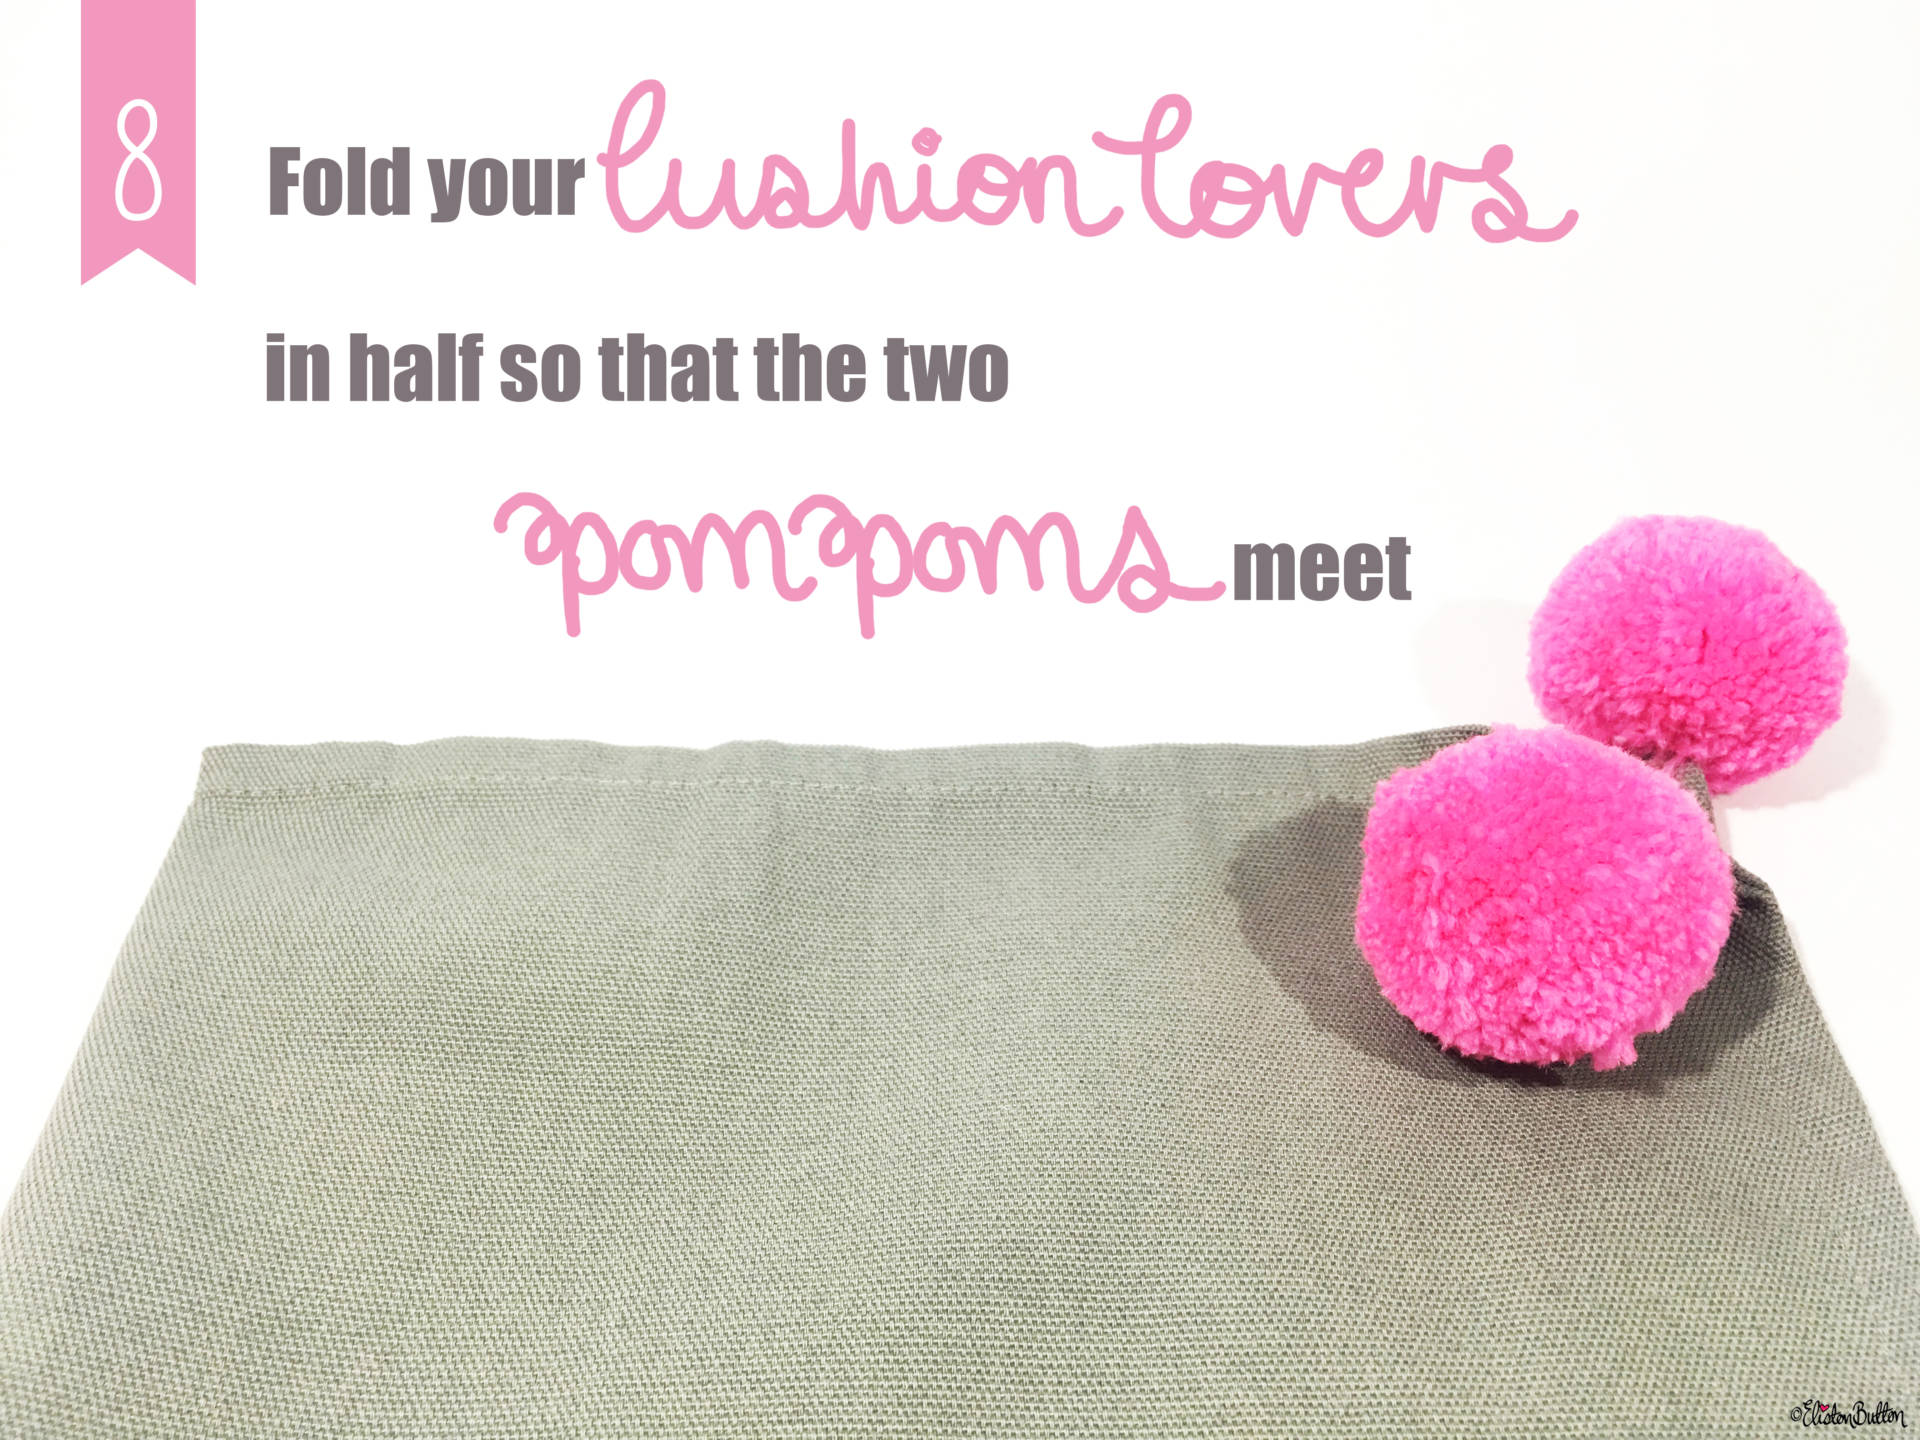 14. Fold your Cushion Cover in Half so that Two Pom Poms Meet - Tutorial Tuesday – Pom Pom Cushion Cover at www.elistonbutton.com - Eliston Button - That Crafty Kid – Art, Design, Craft & Adventure.